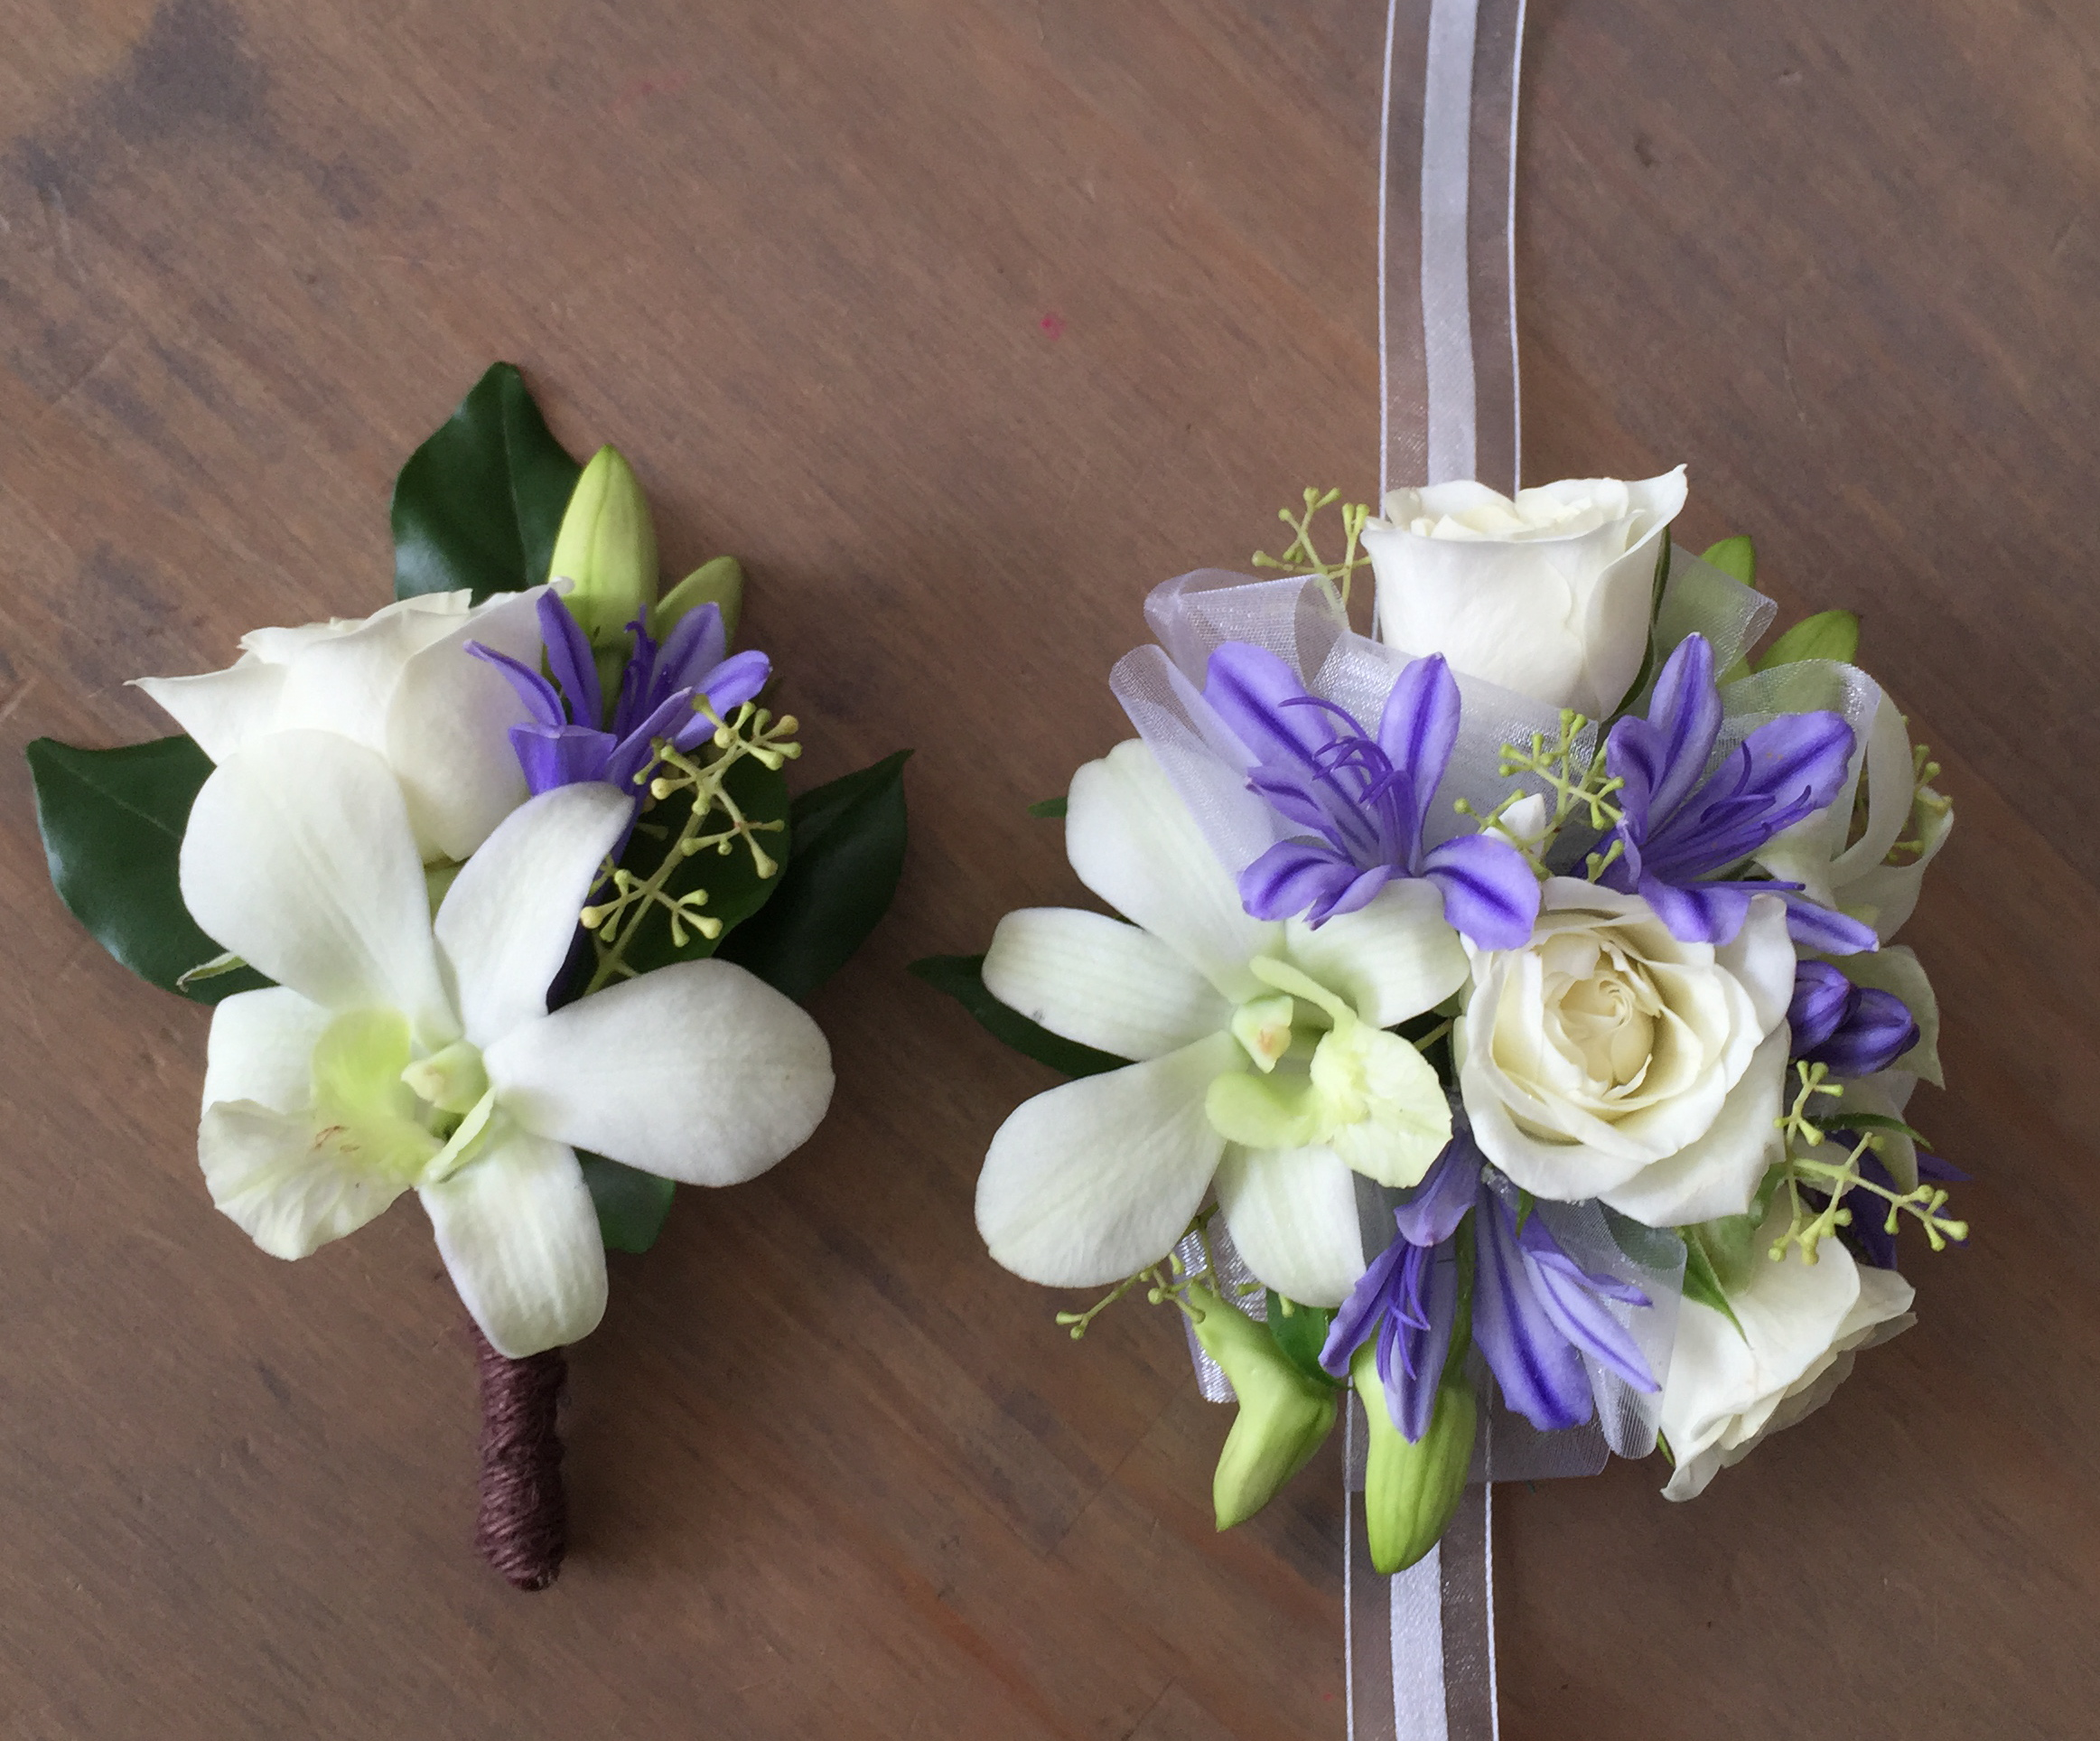 The Springtime, Formal corsage and buttonhole